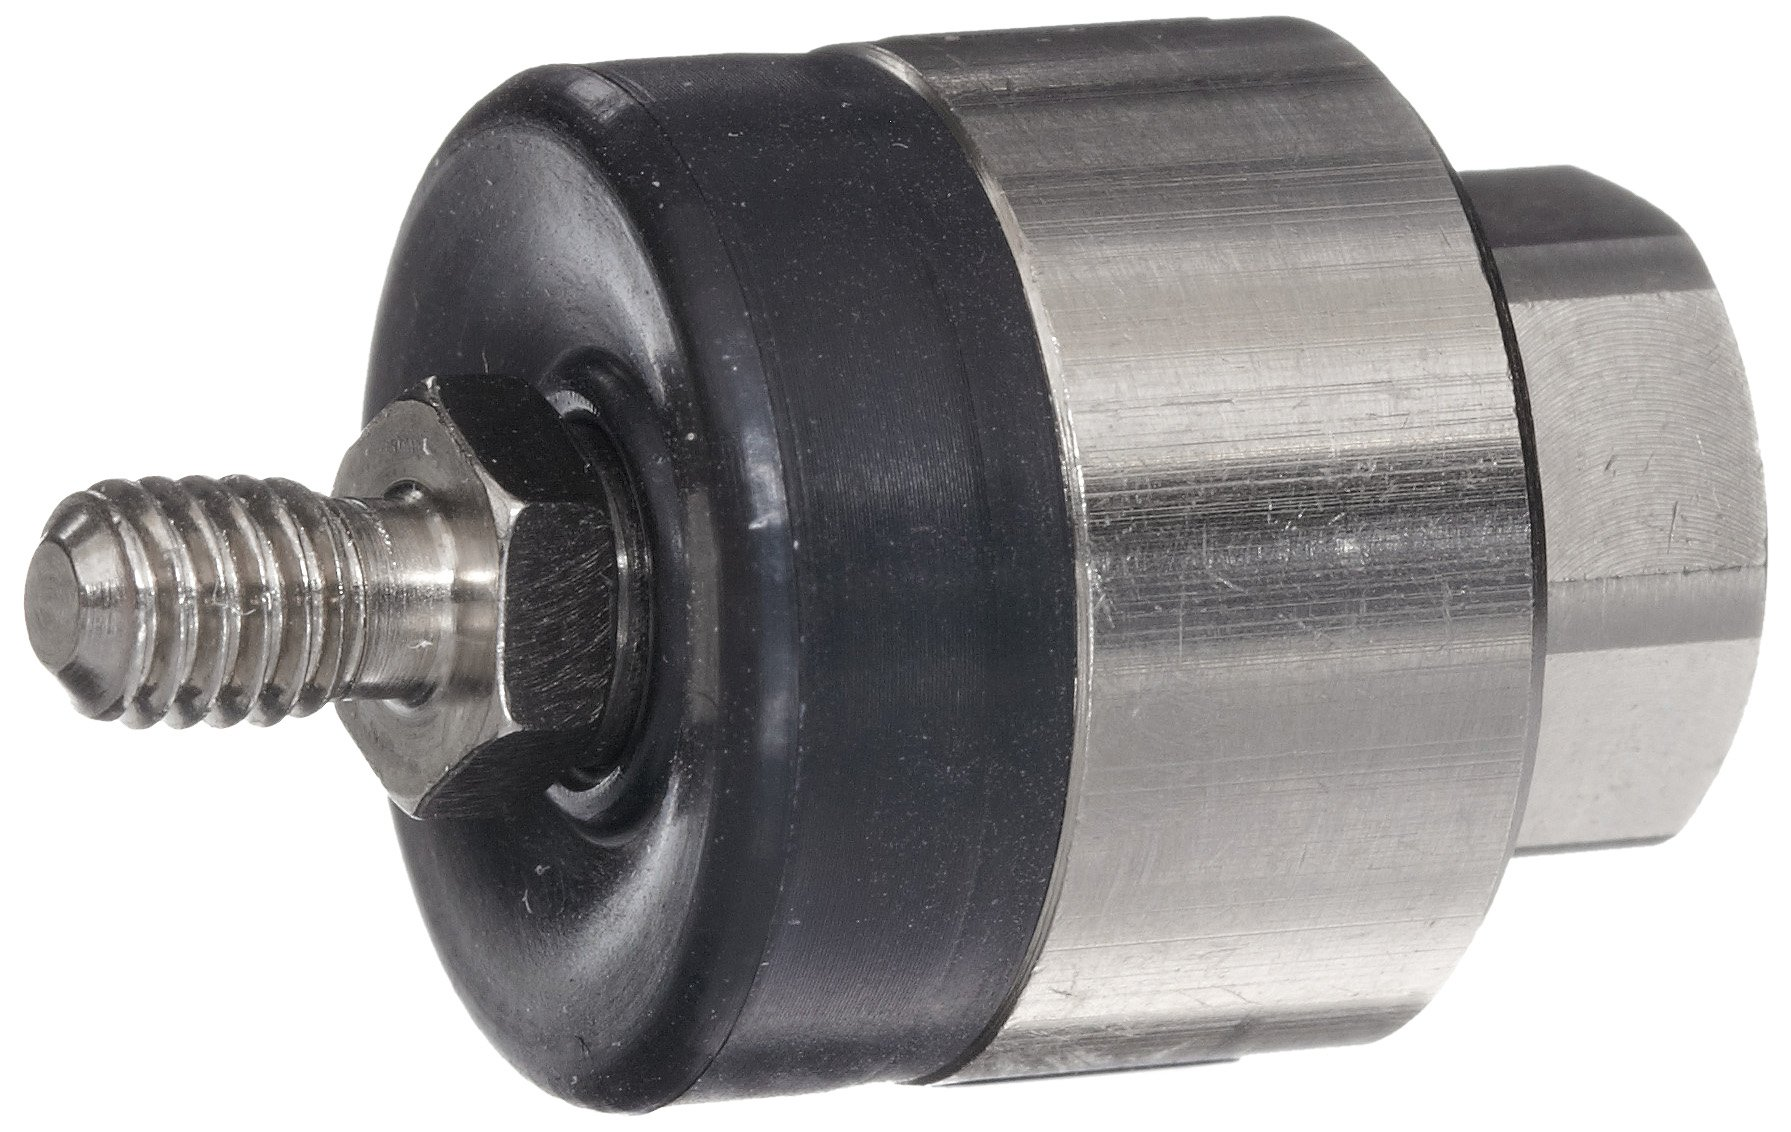 SMC JB40-8-125  Air Cylinder Floating Joint, Compact, 40 mm Bore OD, M8 x 1.25